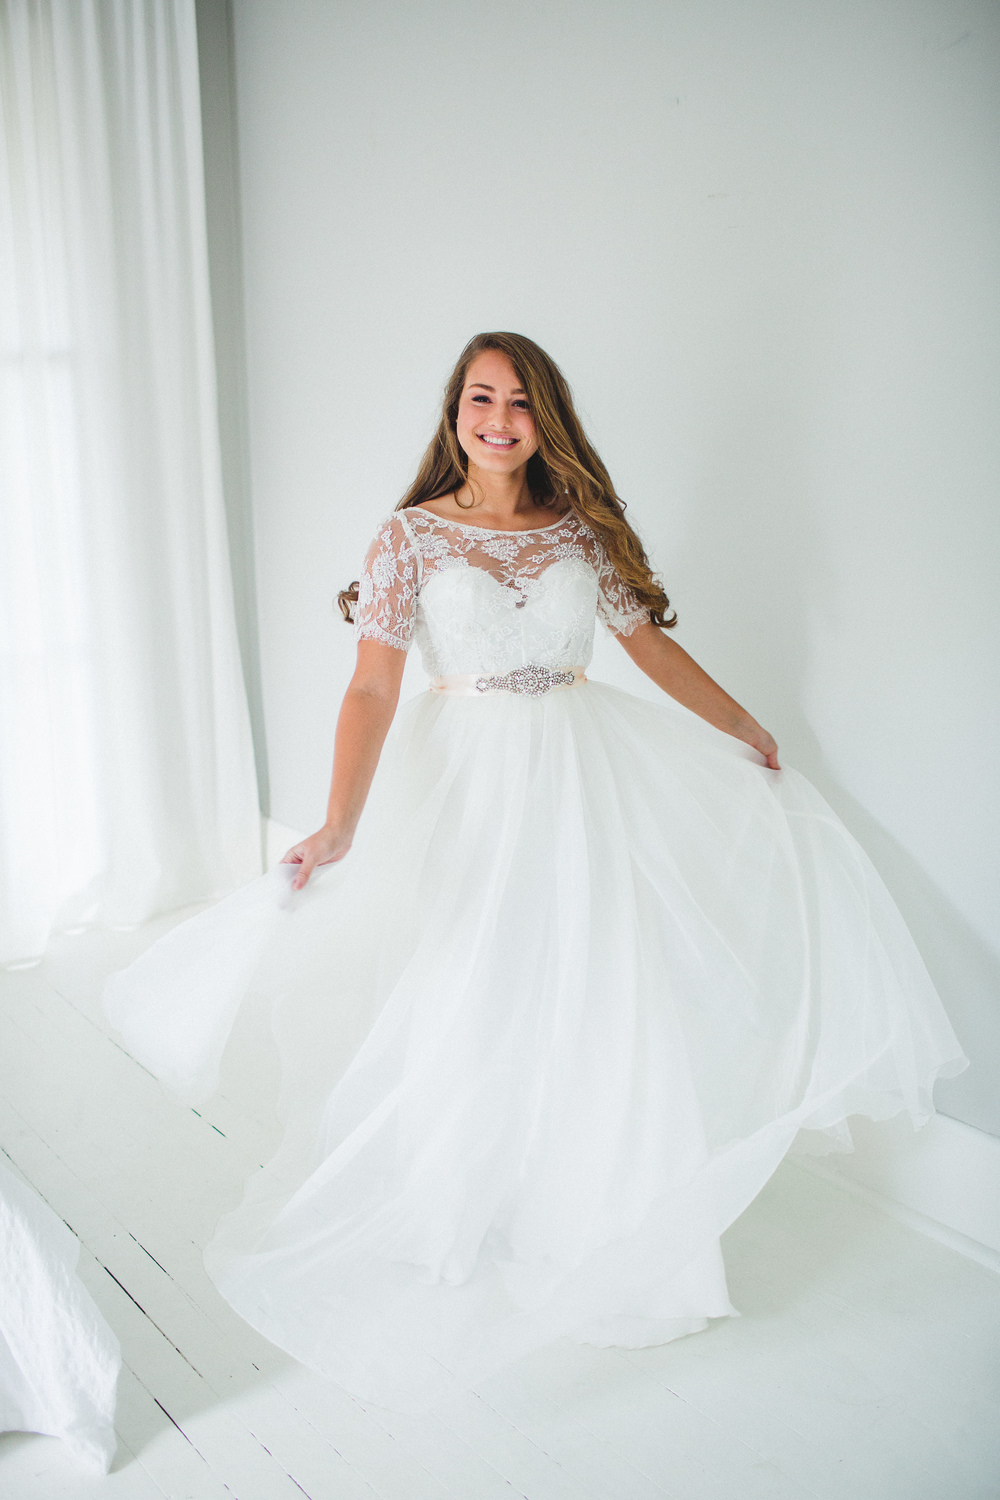 sarah-seven-buchanon-cheap-wedding-dresses-savannah-sarah-seven-sample-sale-savannah-georgia-bridal-boutique-savannah-wedding-dresses-affordable-wedding-dresses-sample-sale-labor-day-savannah-bridal-gowns-2.jpg